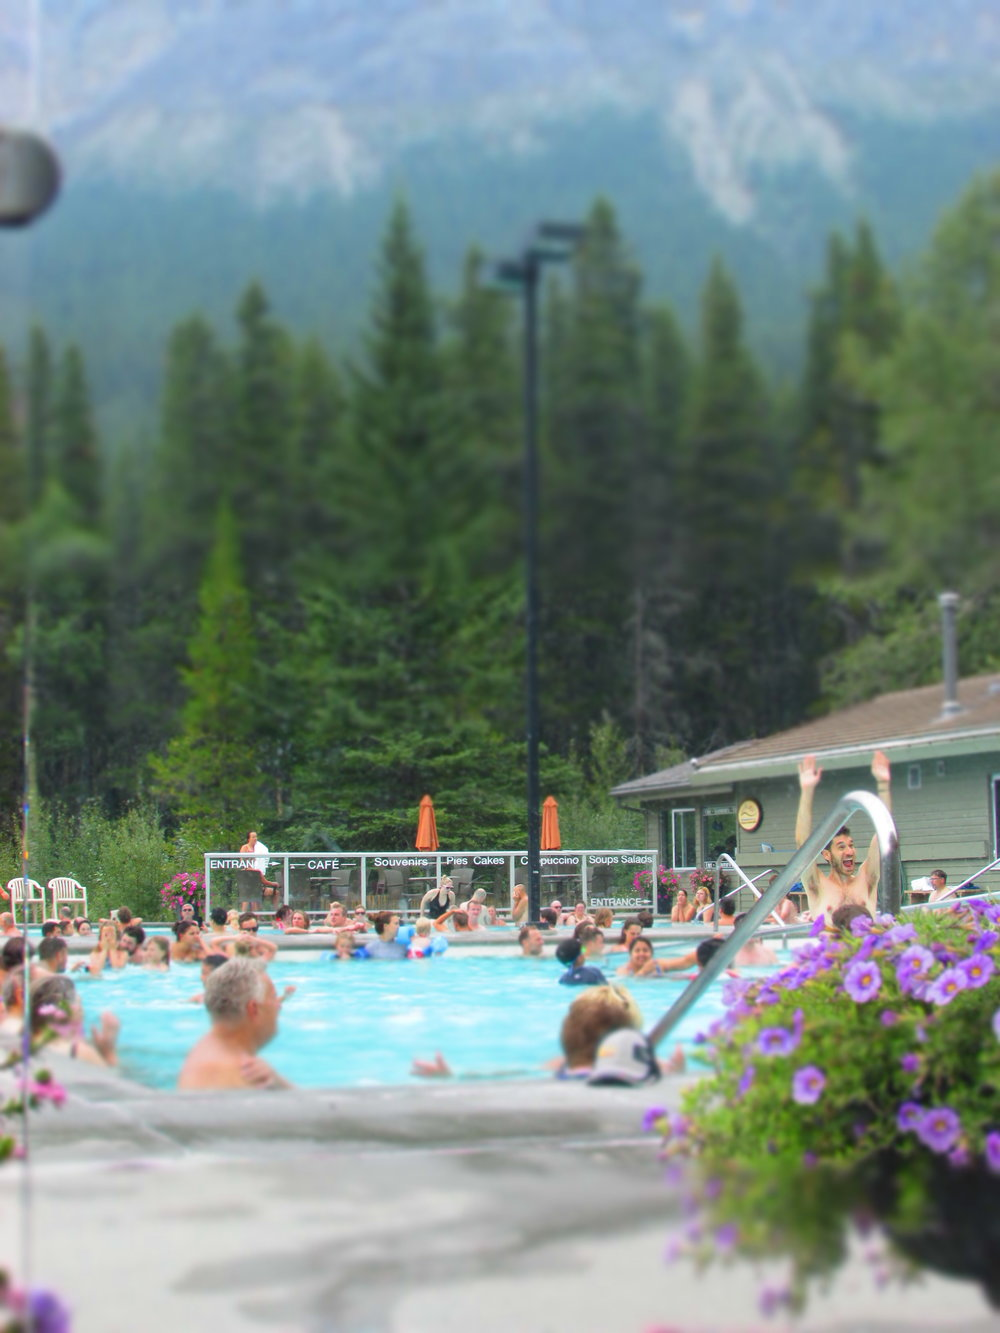 Miette Hot Springs is located at the Sulphur Skyline Trailhead, and is a great place to soak sore muscles after your trek!